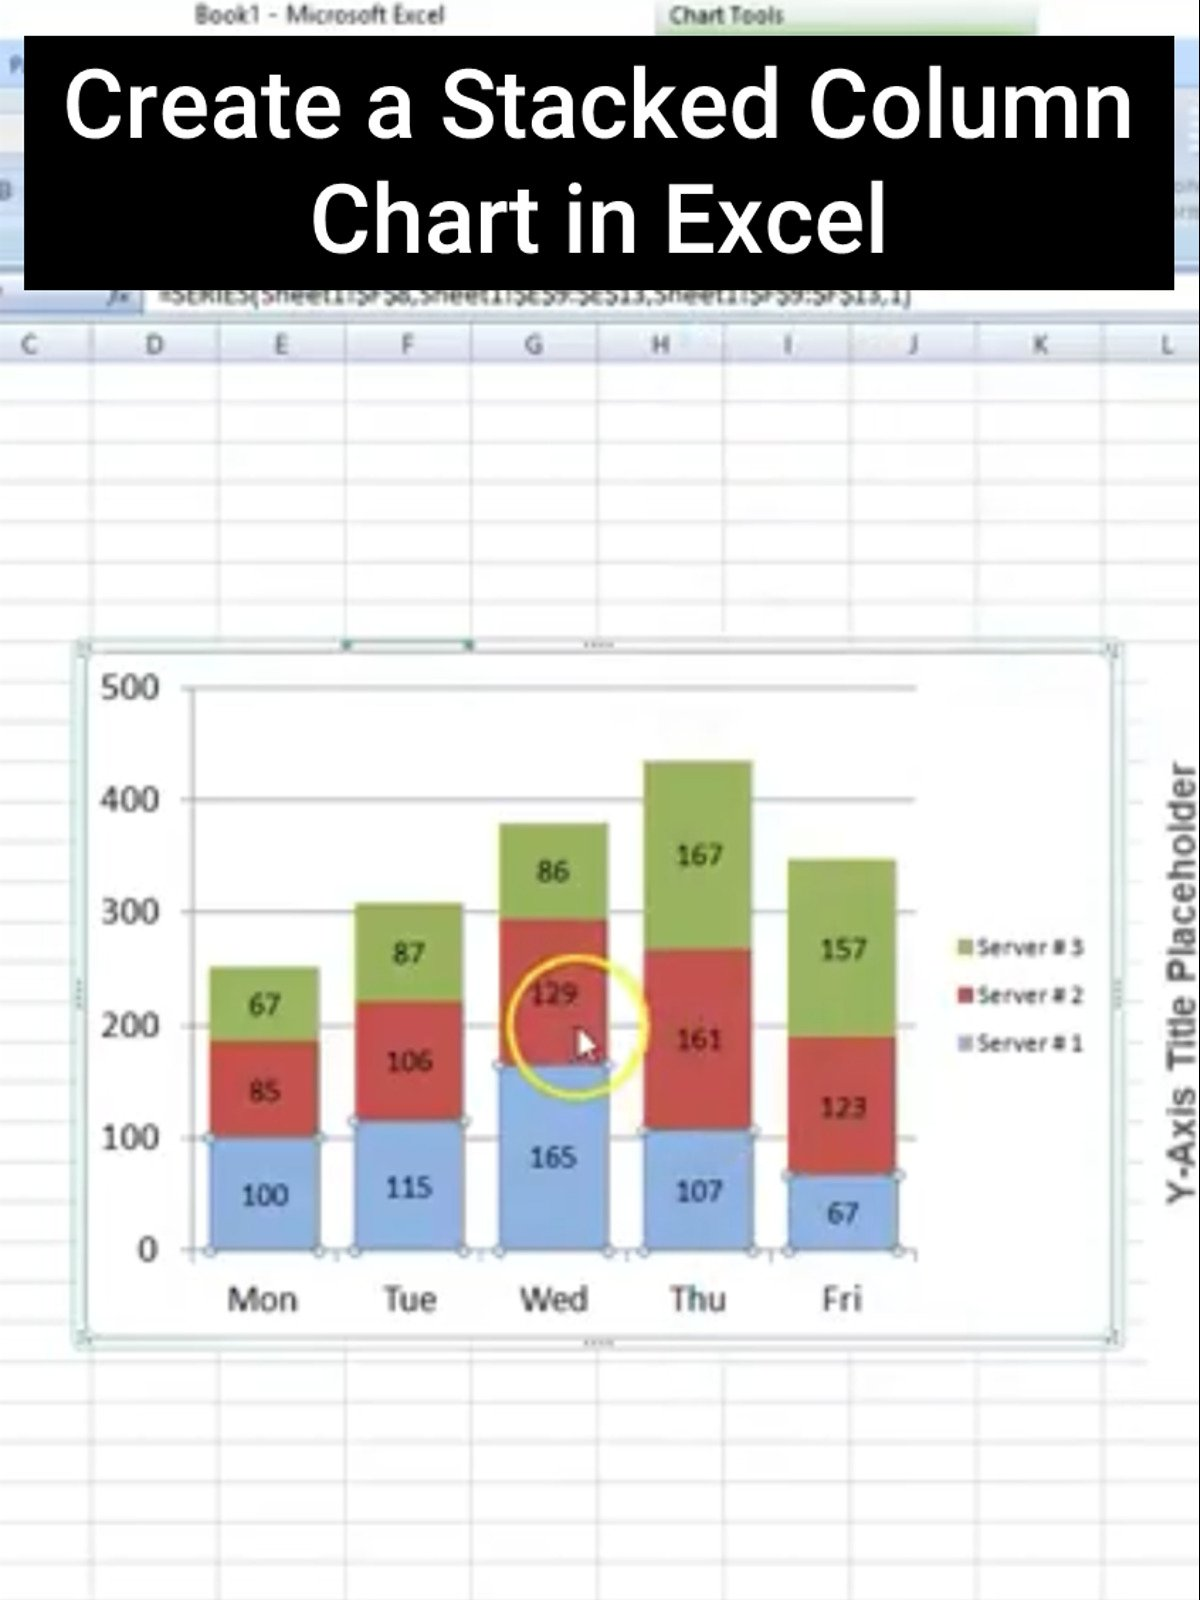 Create a Stacked Column Chart in Excel